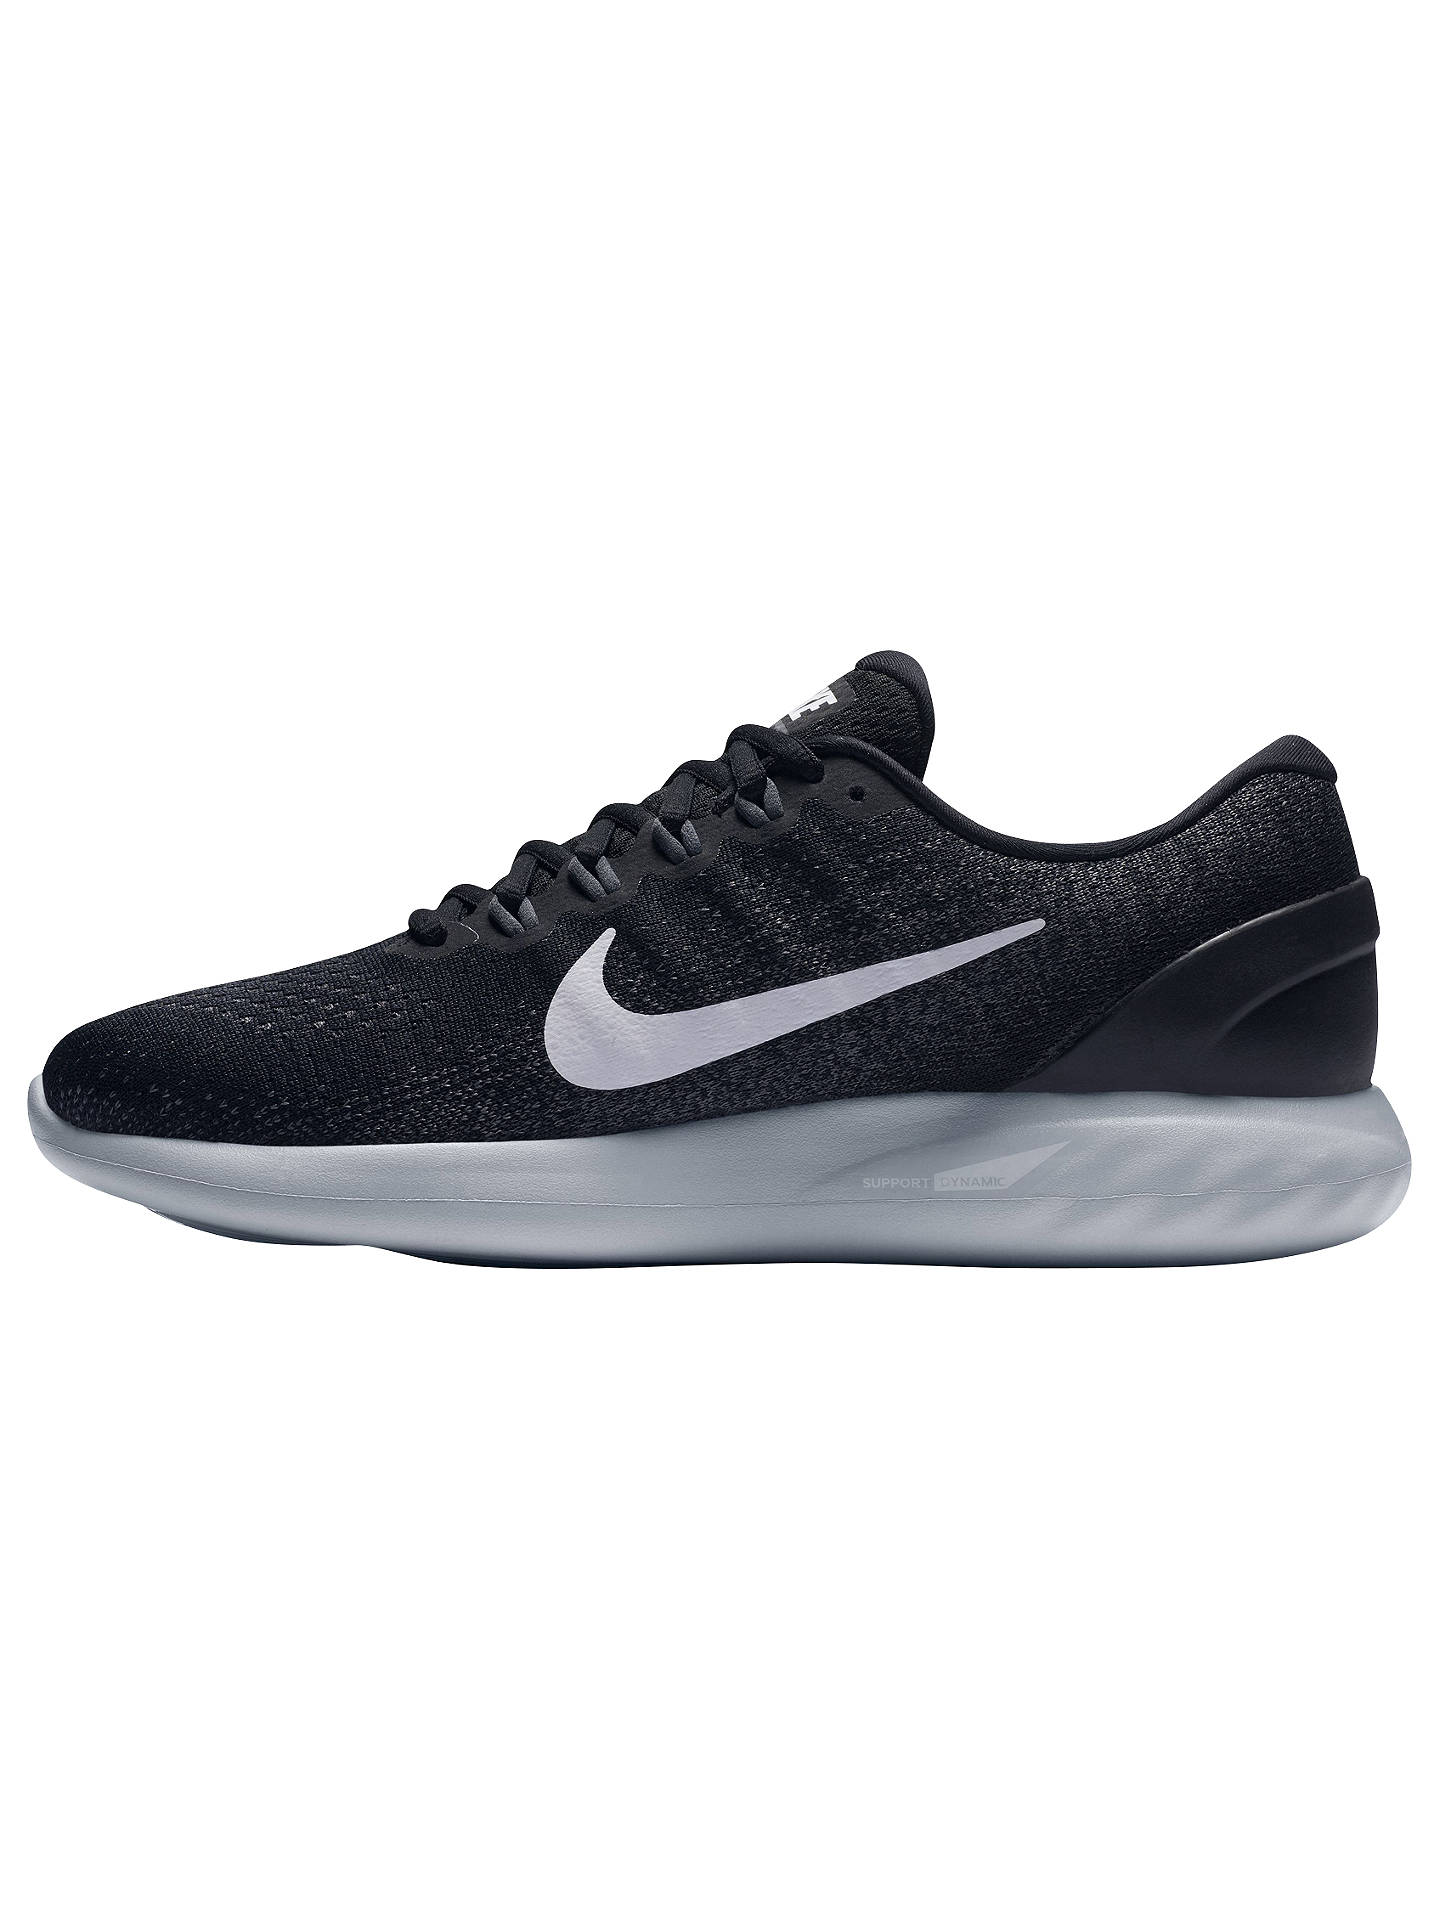 462b82471927d Nike LunarGlide 9 Men s Running Shoes at John Lewis   Partners